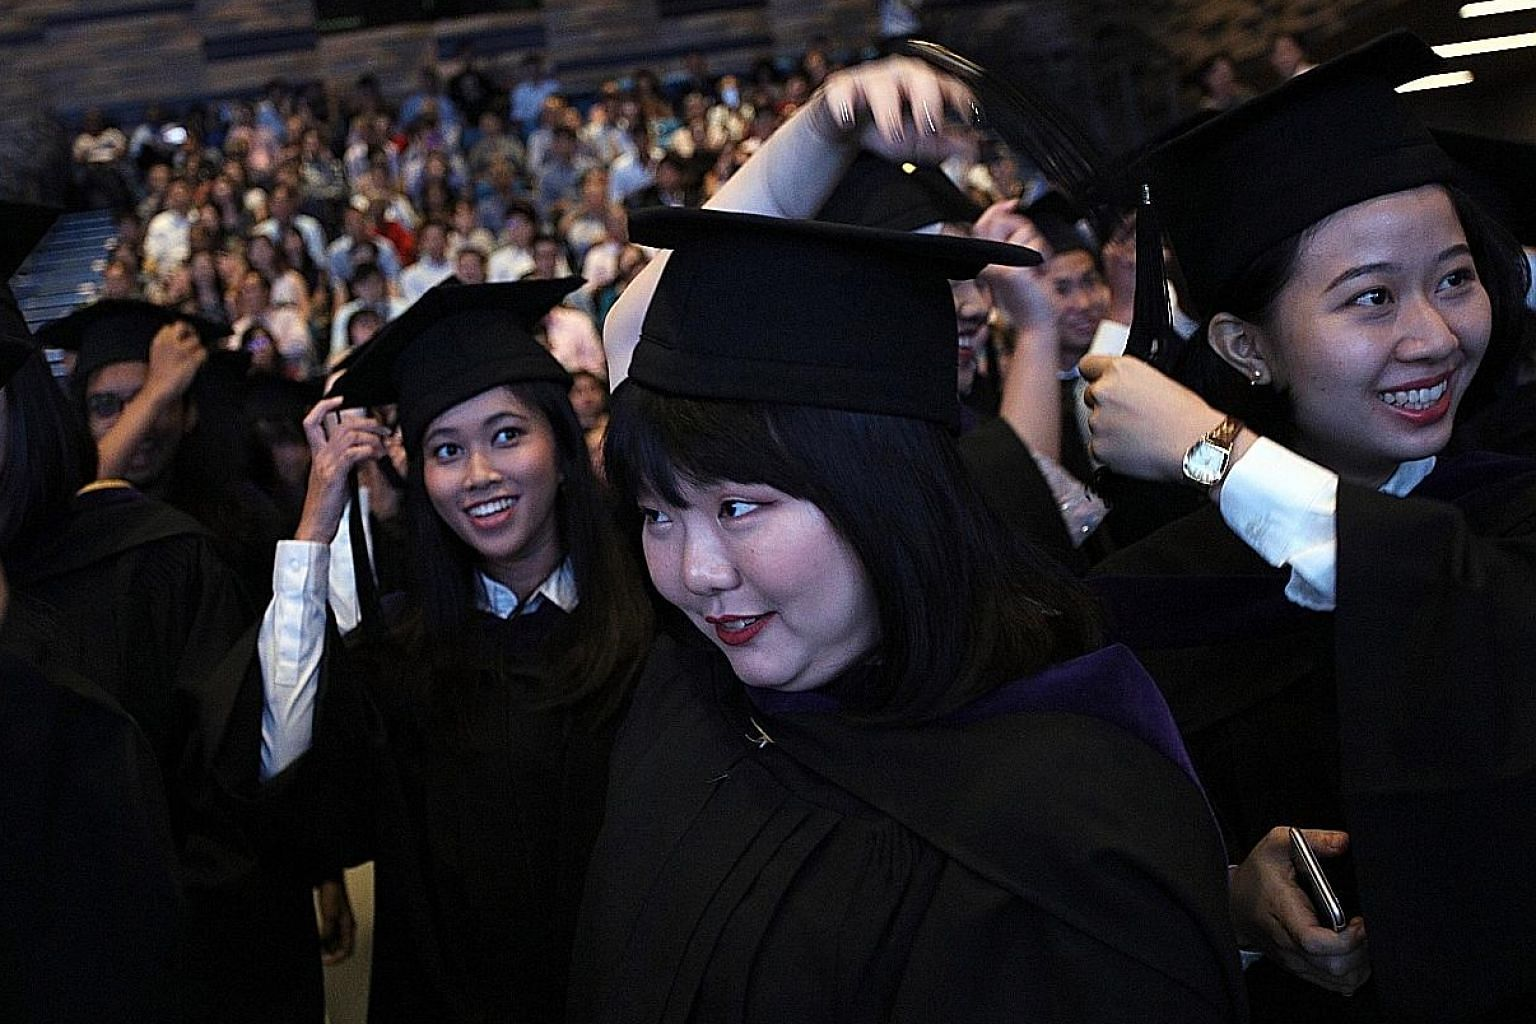 Graduates at a Singapore Management University commencement ceremony in 2017. Education Minister Ong Ye Kung said that as announced in 2012, the university participation rate will effectively rise to 50 per cent. But he also stressed the importance o